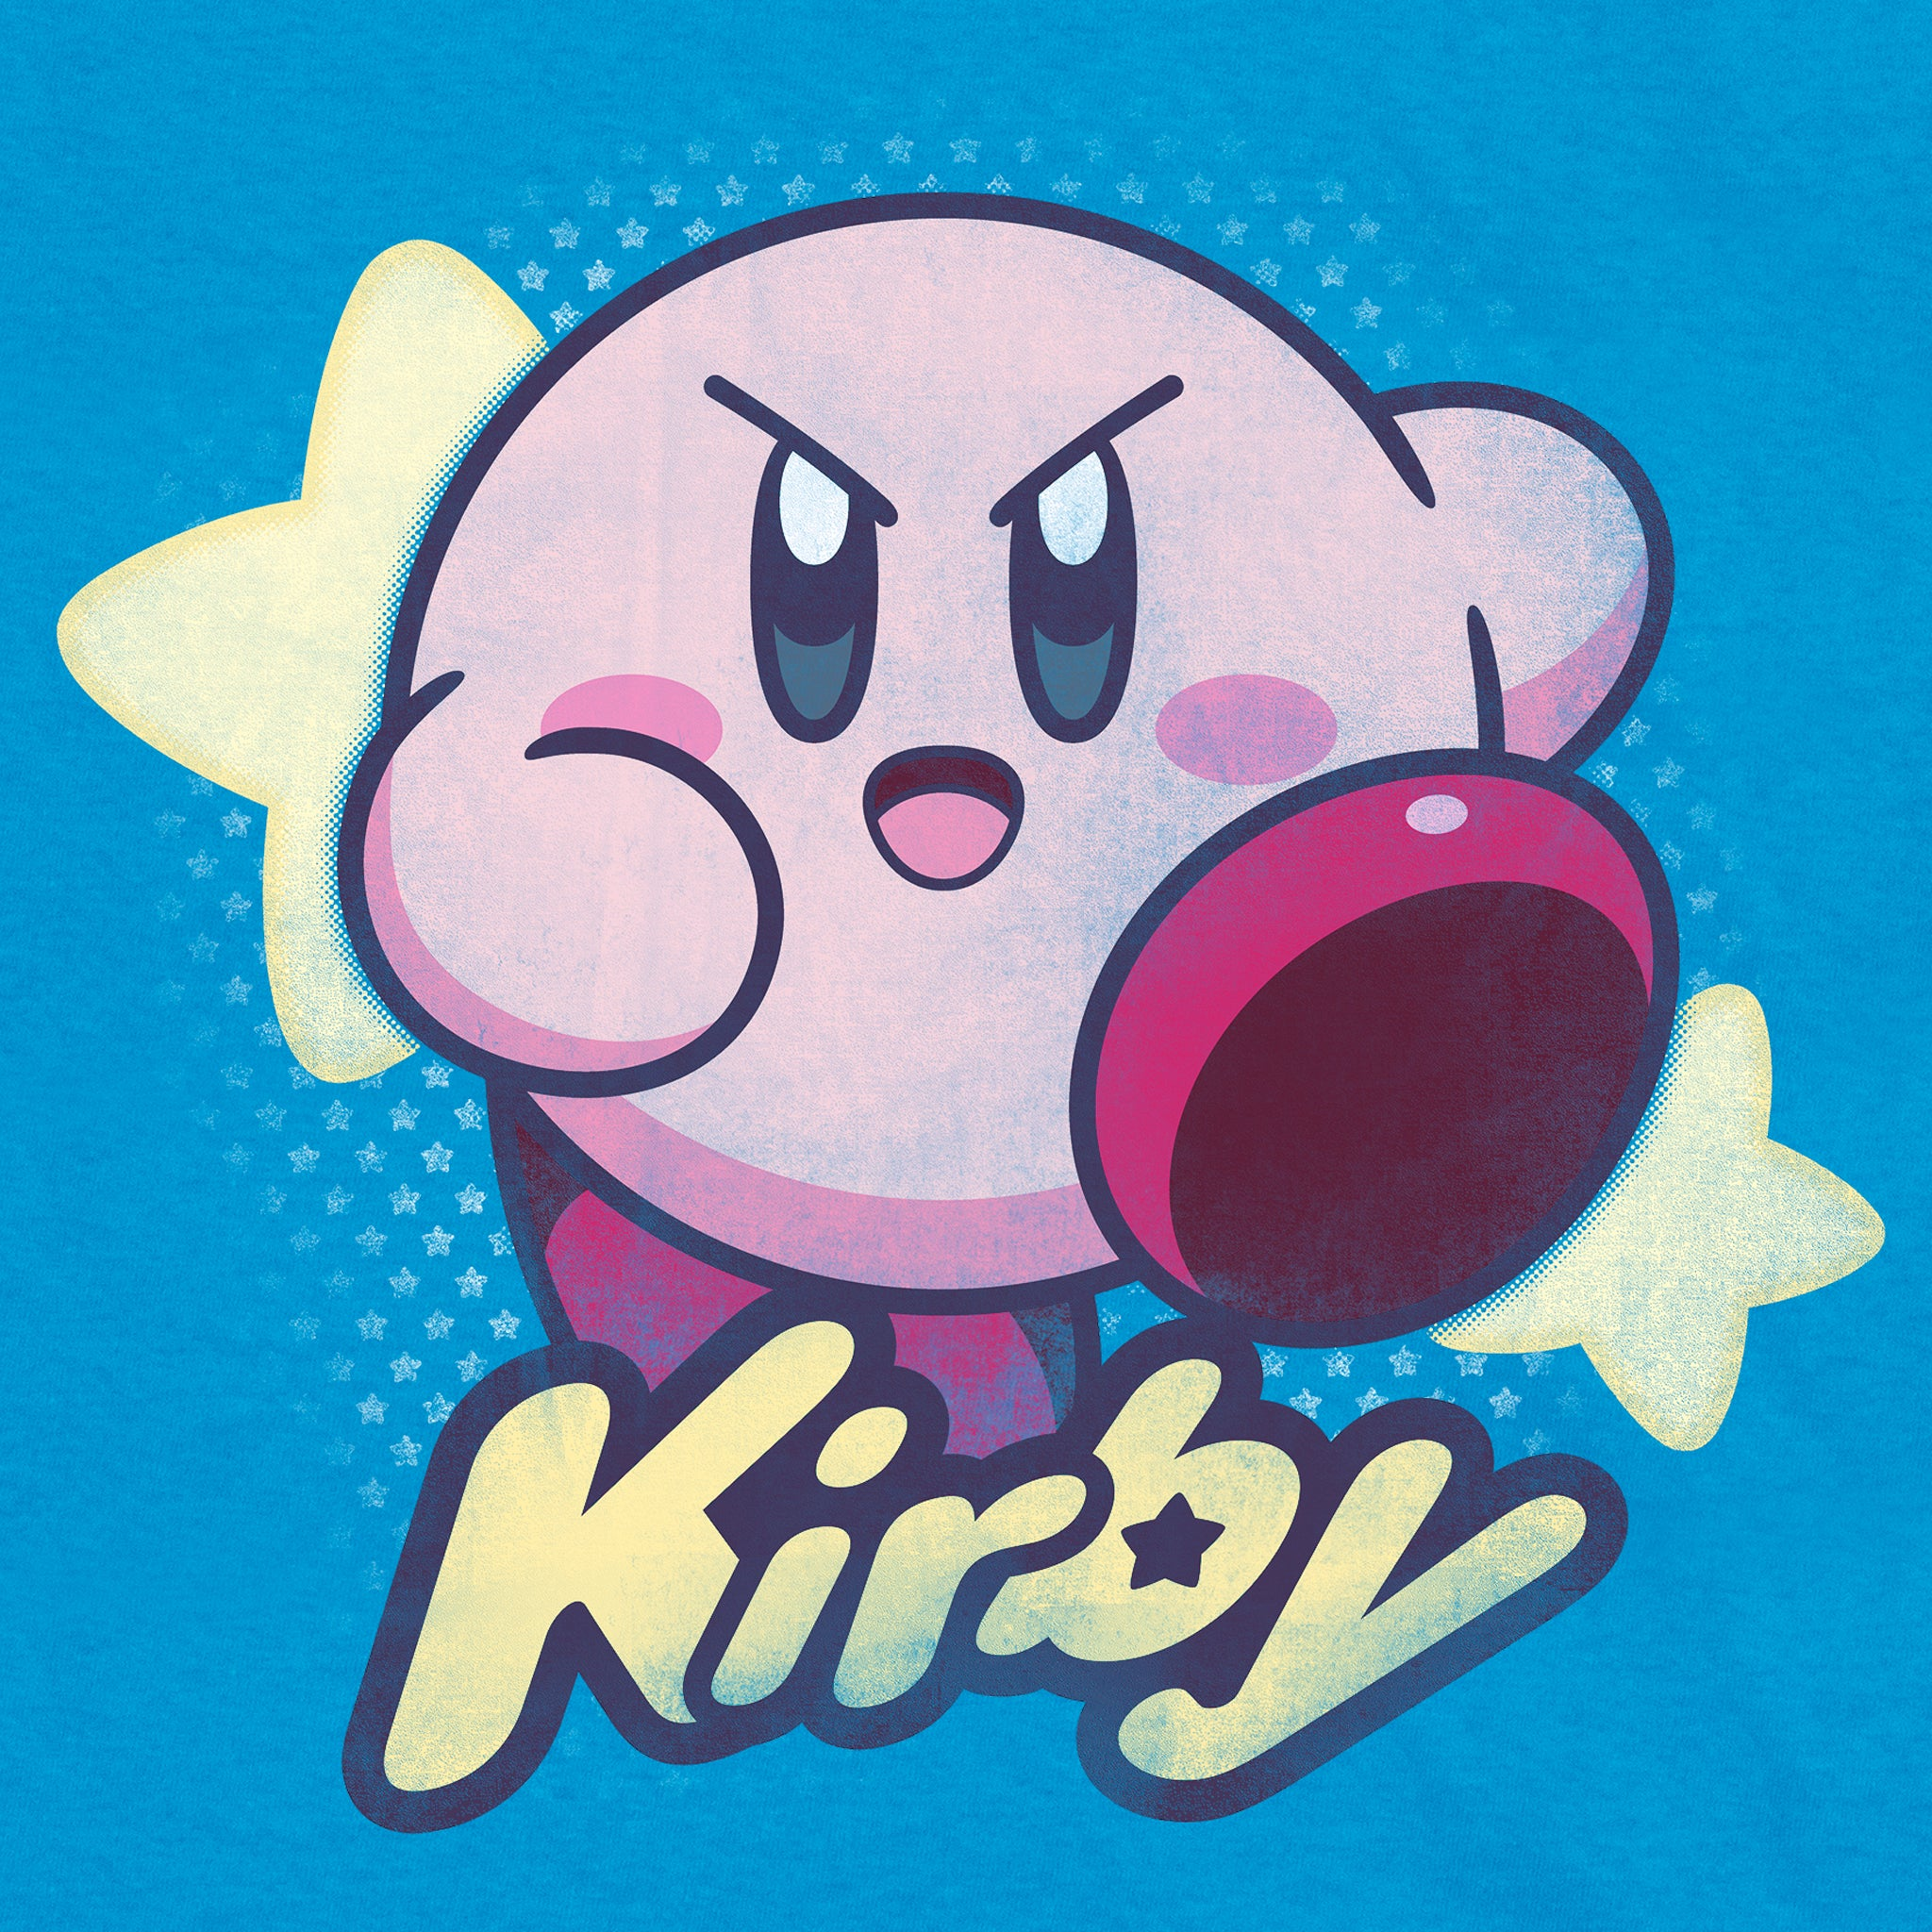 kirby blue nintendo video games gaming t-shirt apparel shirt graphic culturefly